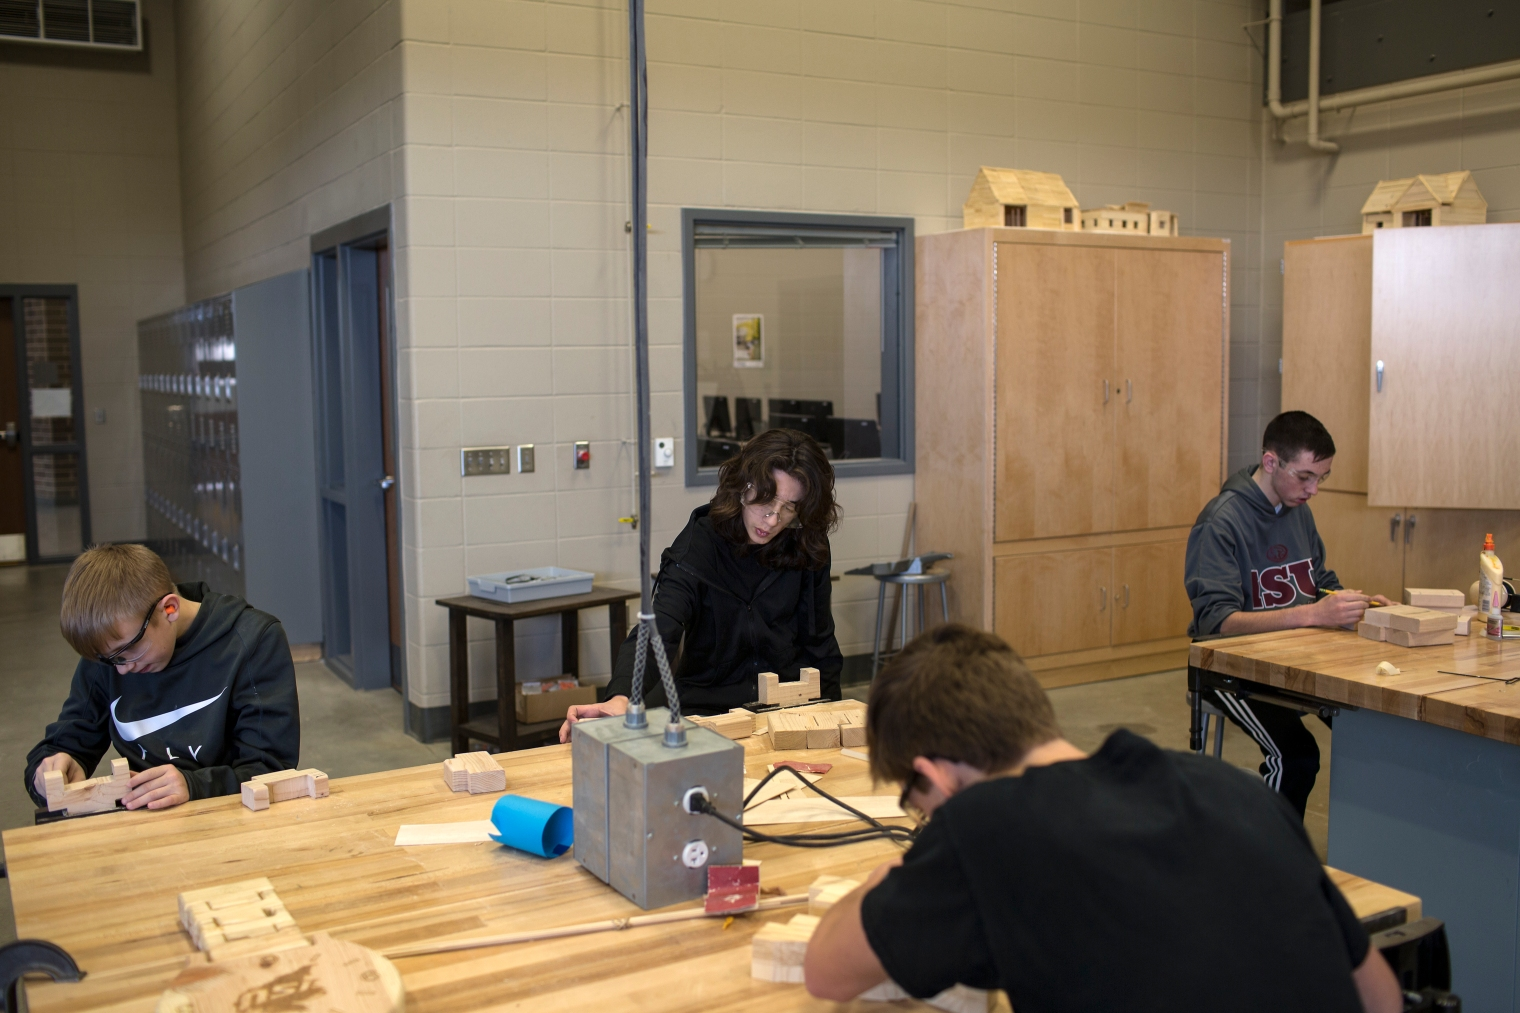 Nazeer Tameem during wood working class at Waukee Middle School. Waukee is a suburb of Des Moines, Iowa.